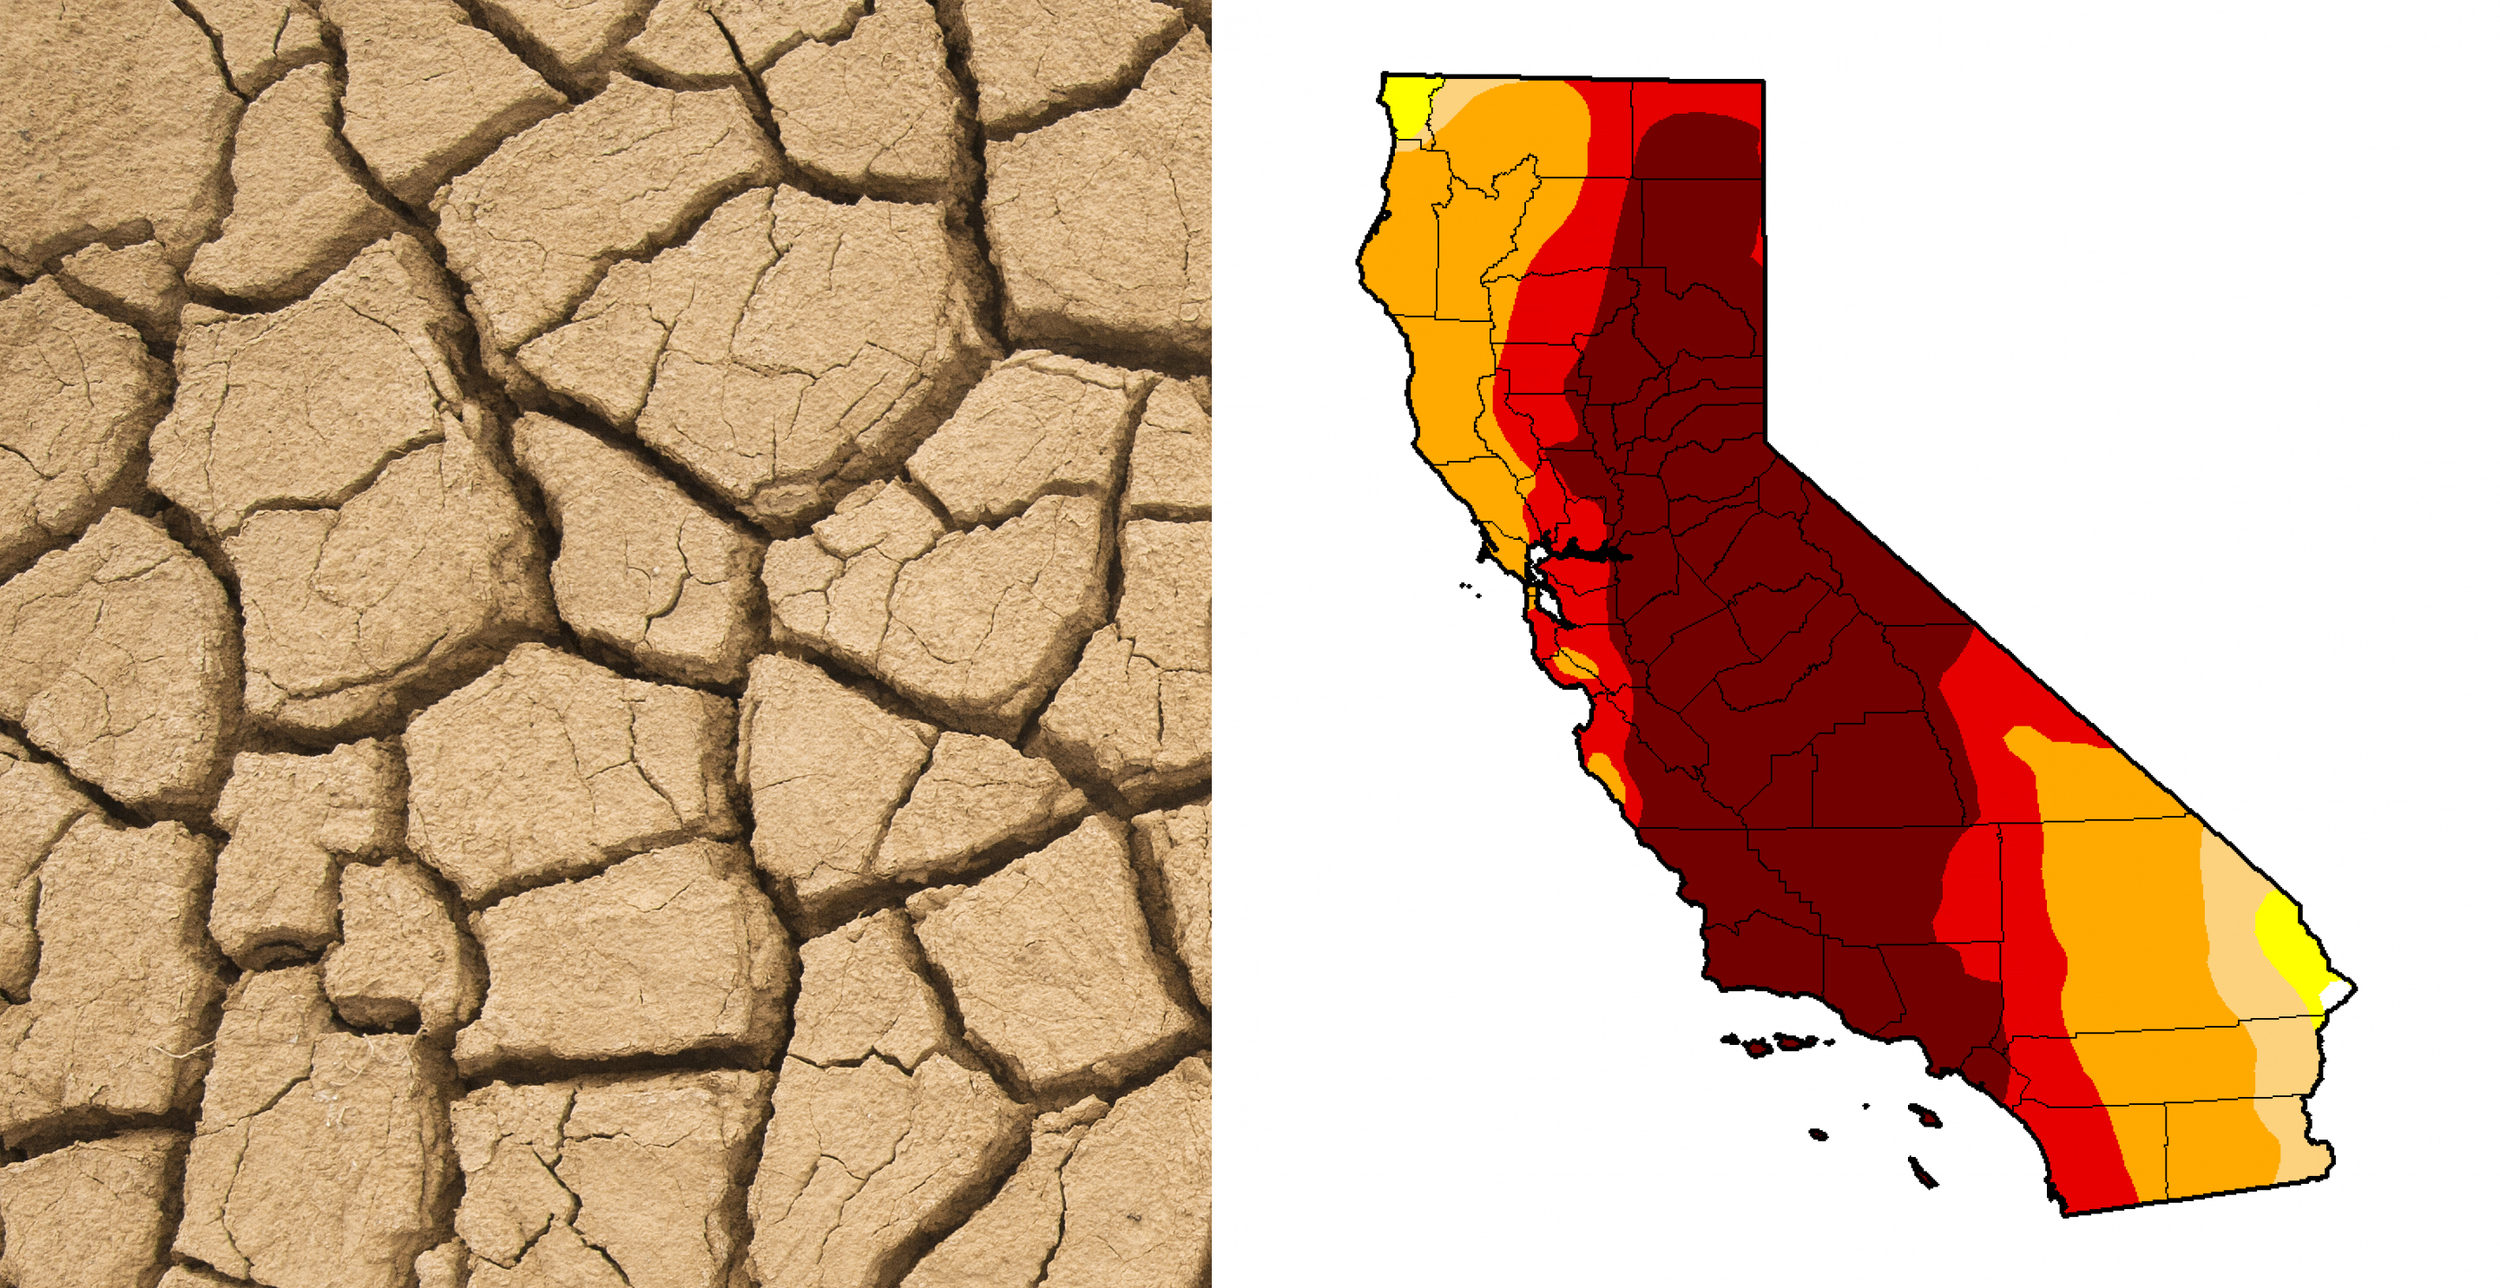 Existing imagery and palette uses an aggressive approach to convey the drought: wheat beige tones are used to alert the viewer while bright red hues prompt urgency. Credit for photos: Wordpress and Washington Post.